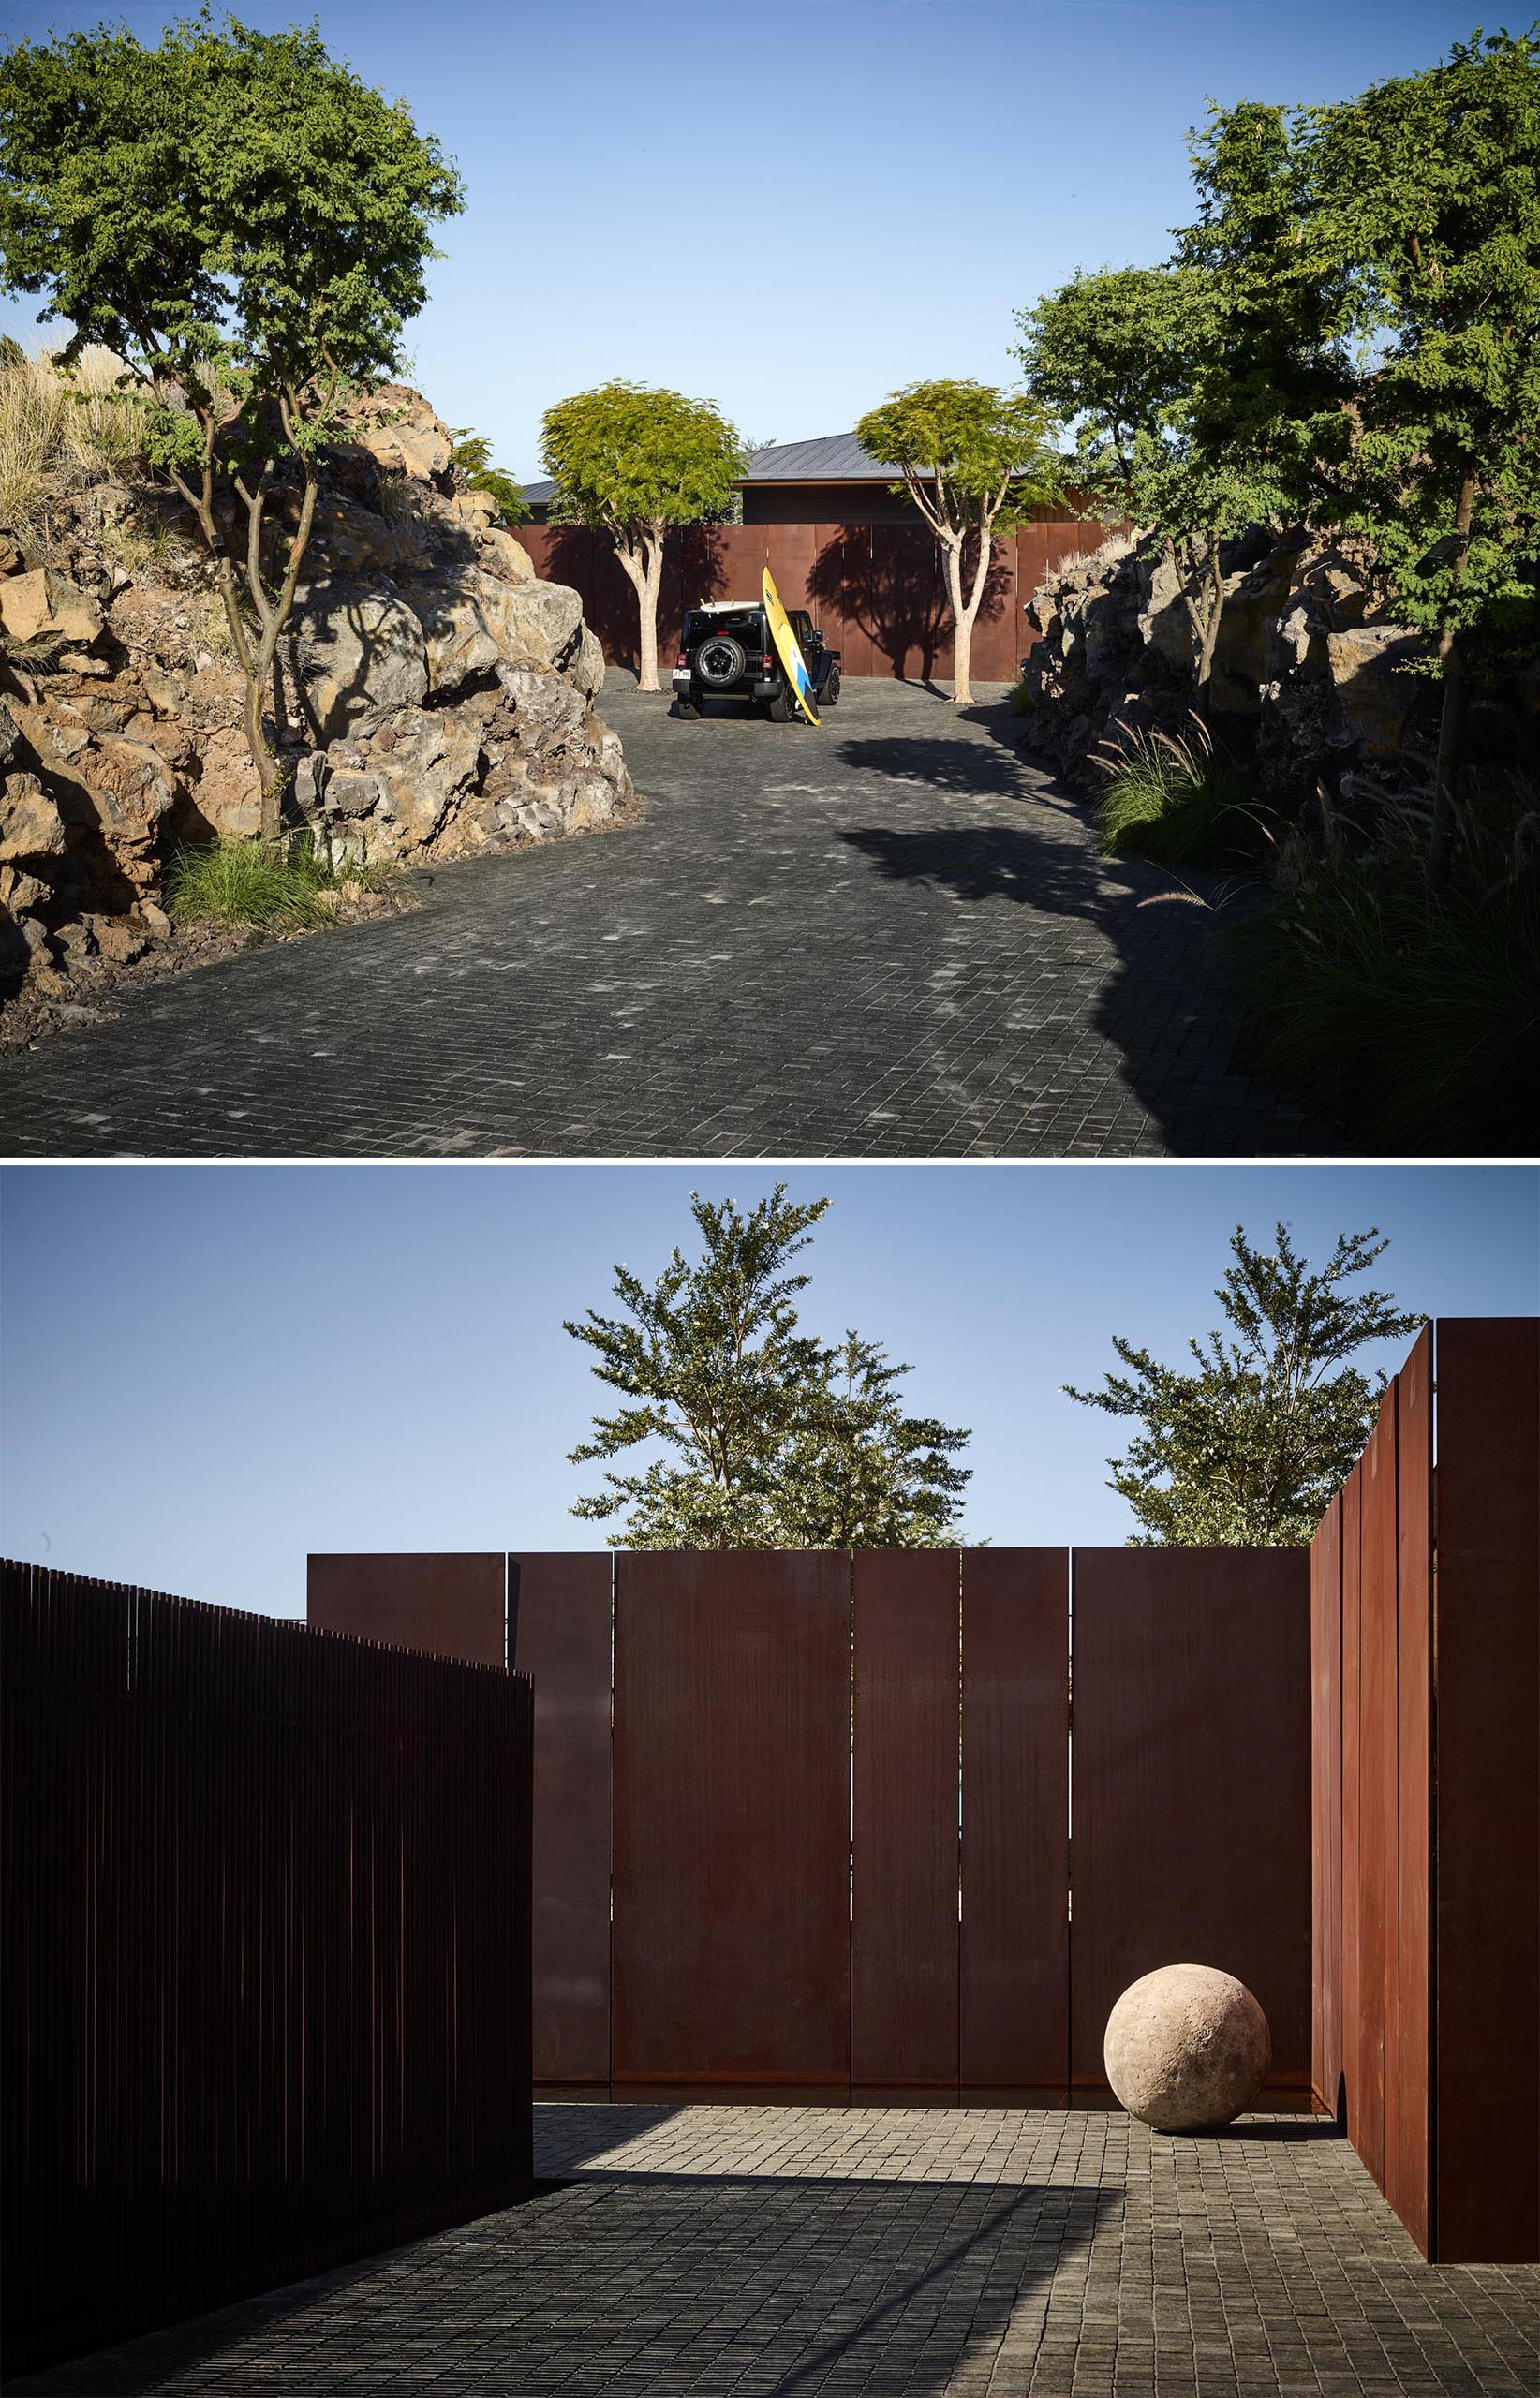 A driveway that leads to a auto court with weathered steel walls.